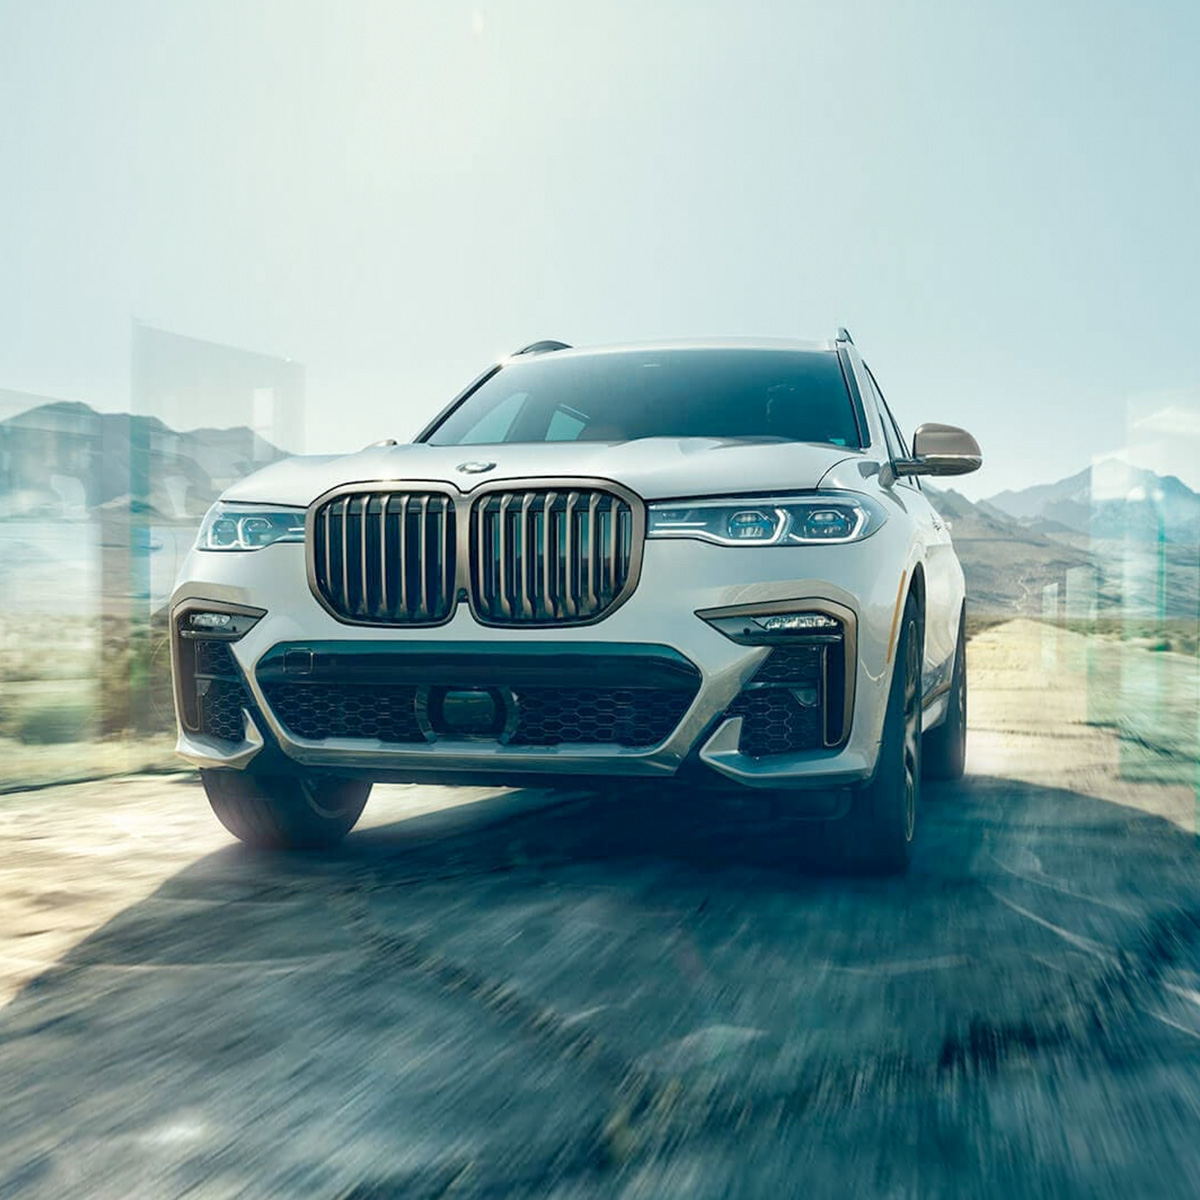 Front view of white 2021 BMW X7 off road